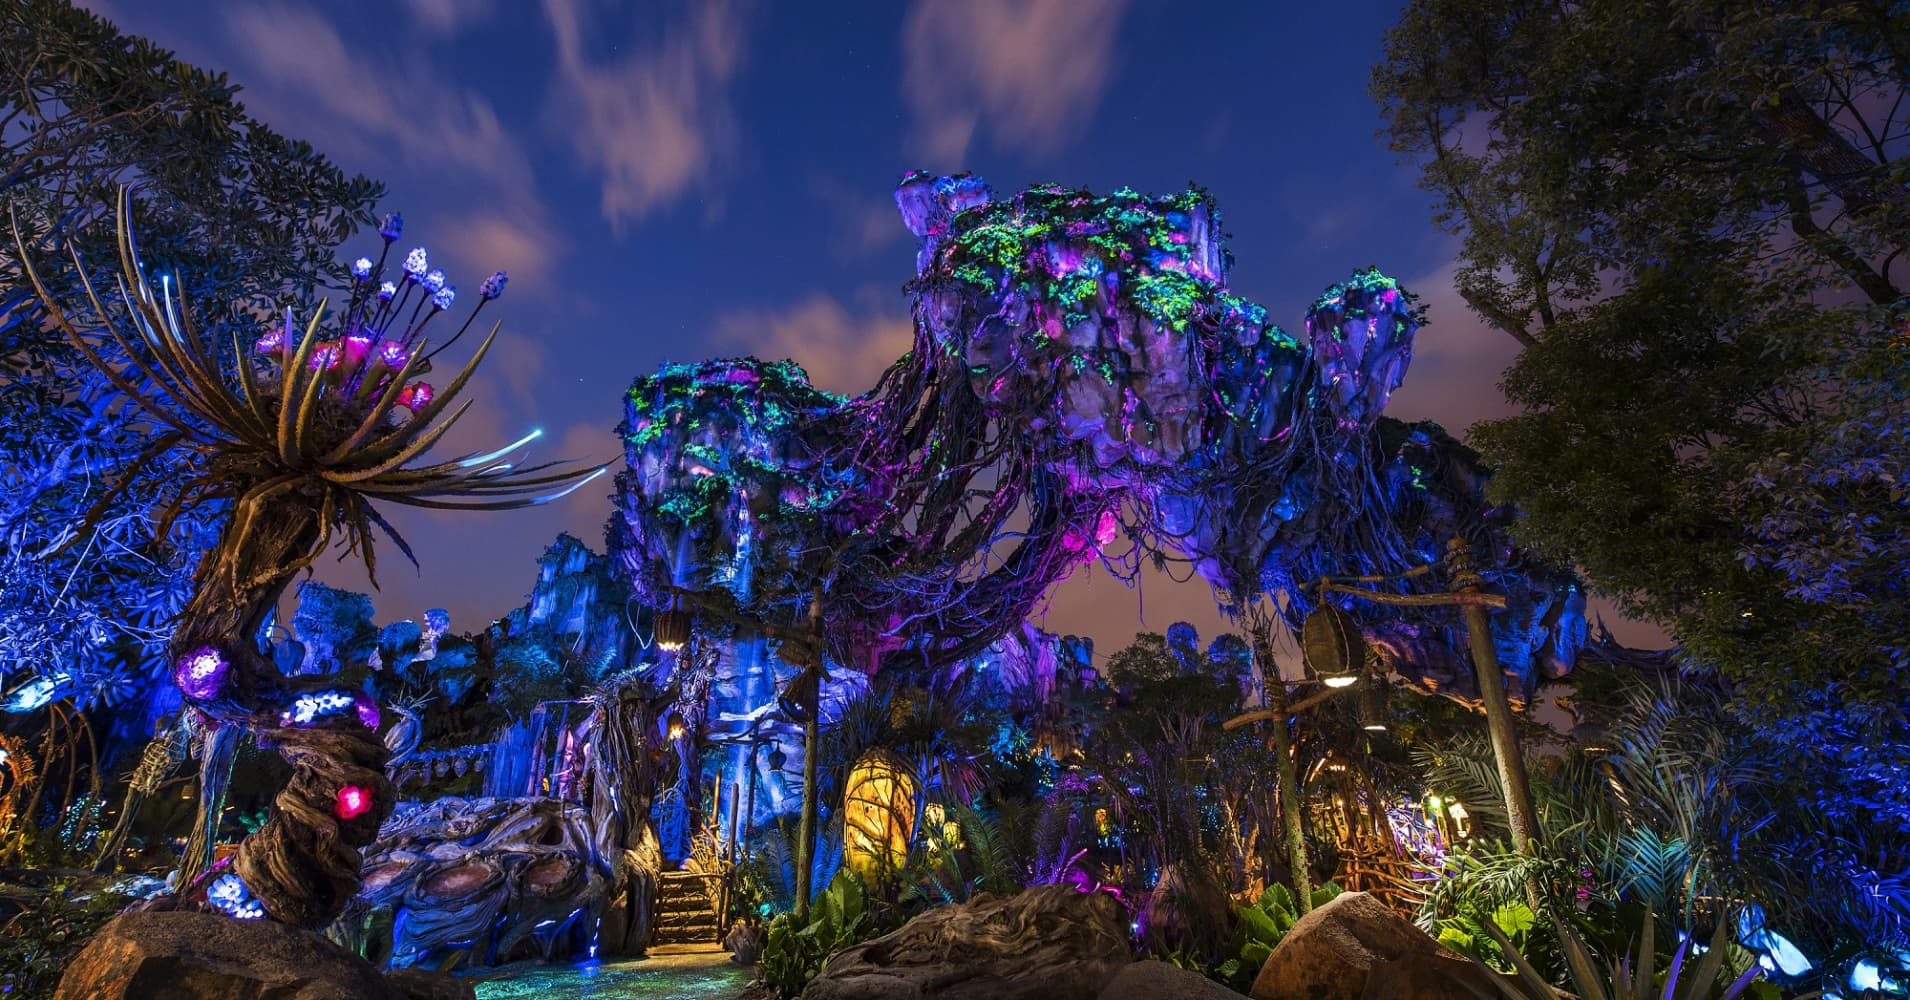 win contest to stay overnight at disney world s avatar attraction